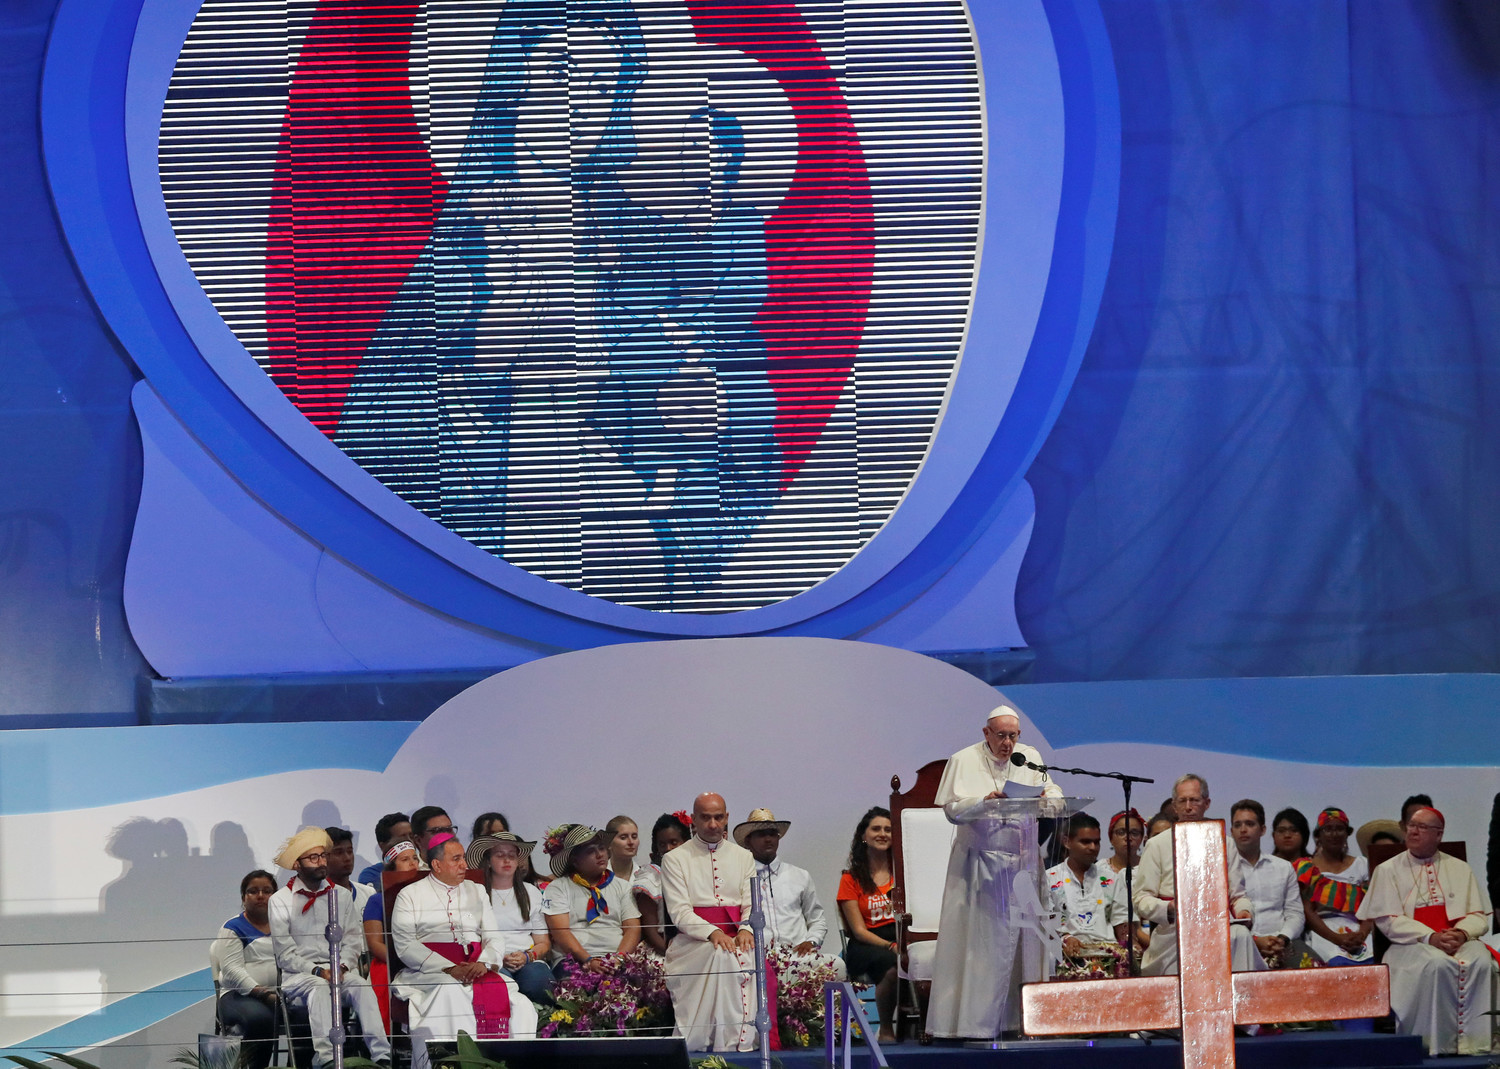 Pope Francis speaks as he leads World Youth Day pilgrims in the Way of the Cross at Santa Maria la Antigua Field in Panama City Jan. 25, 2019.